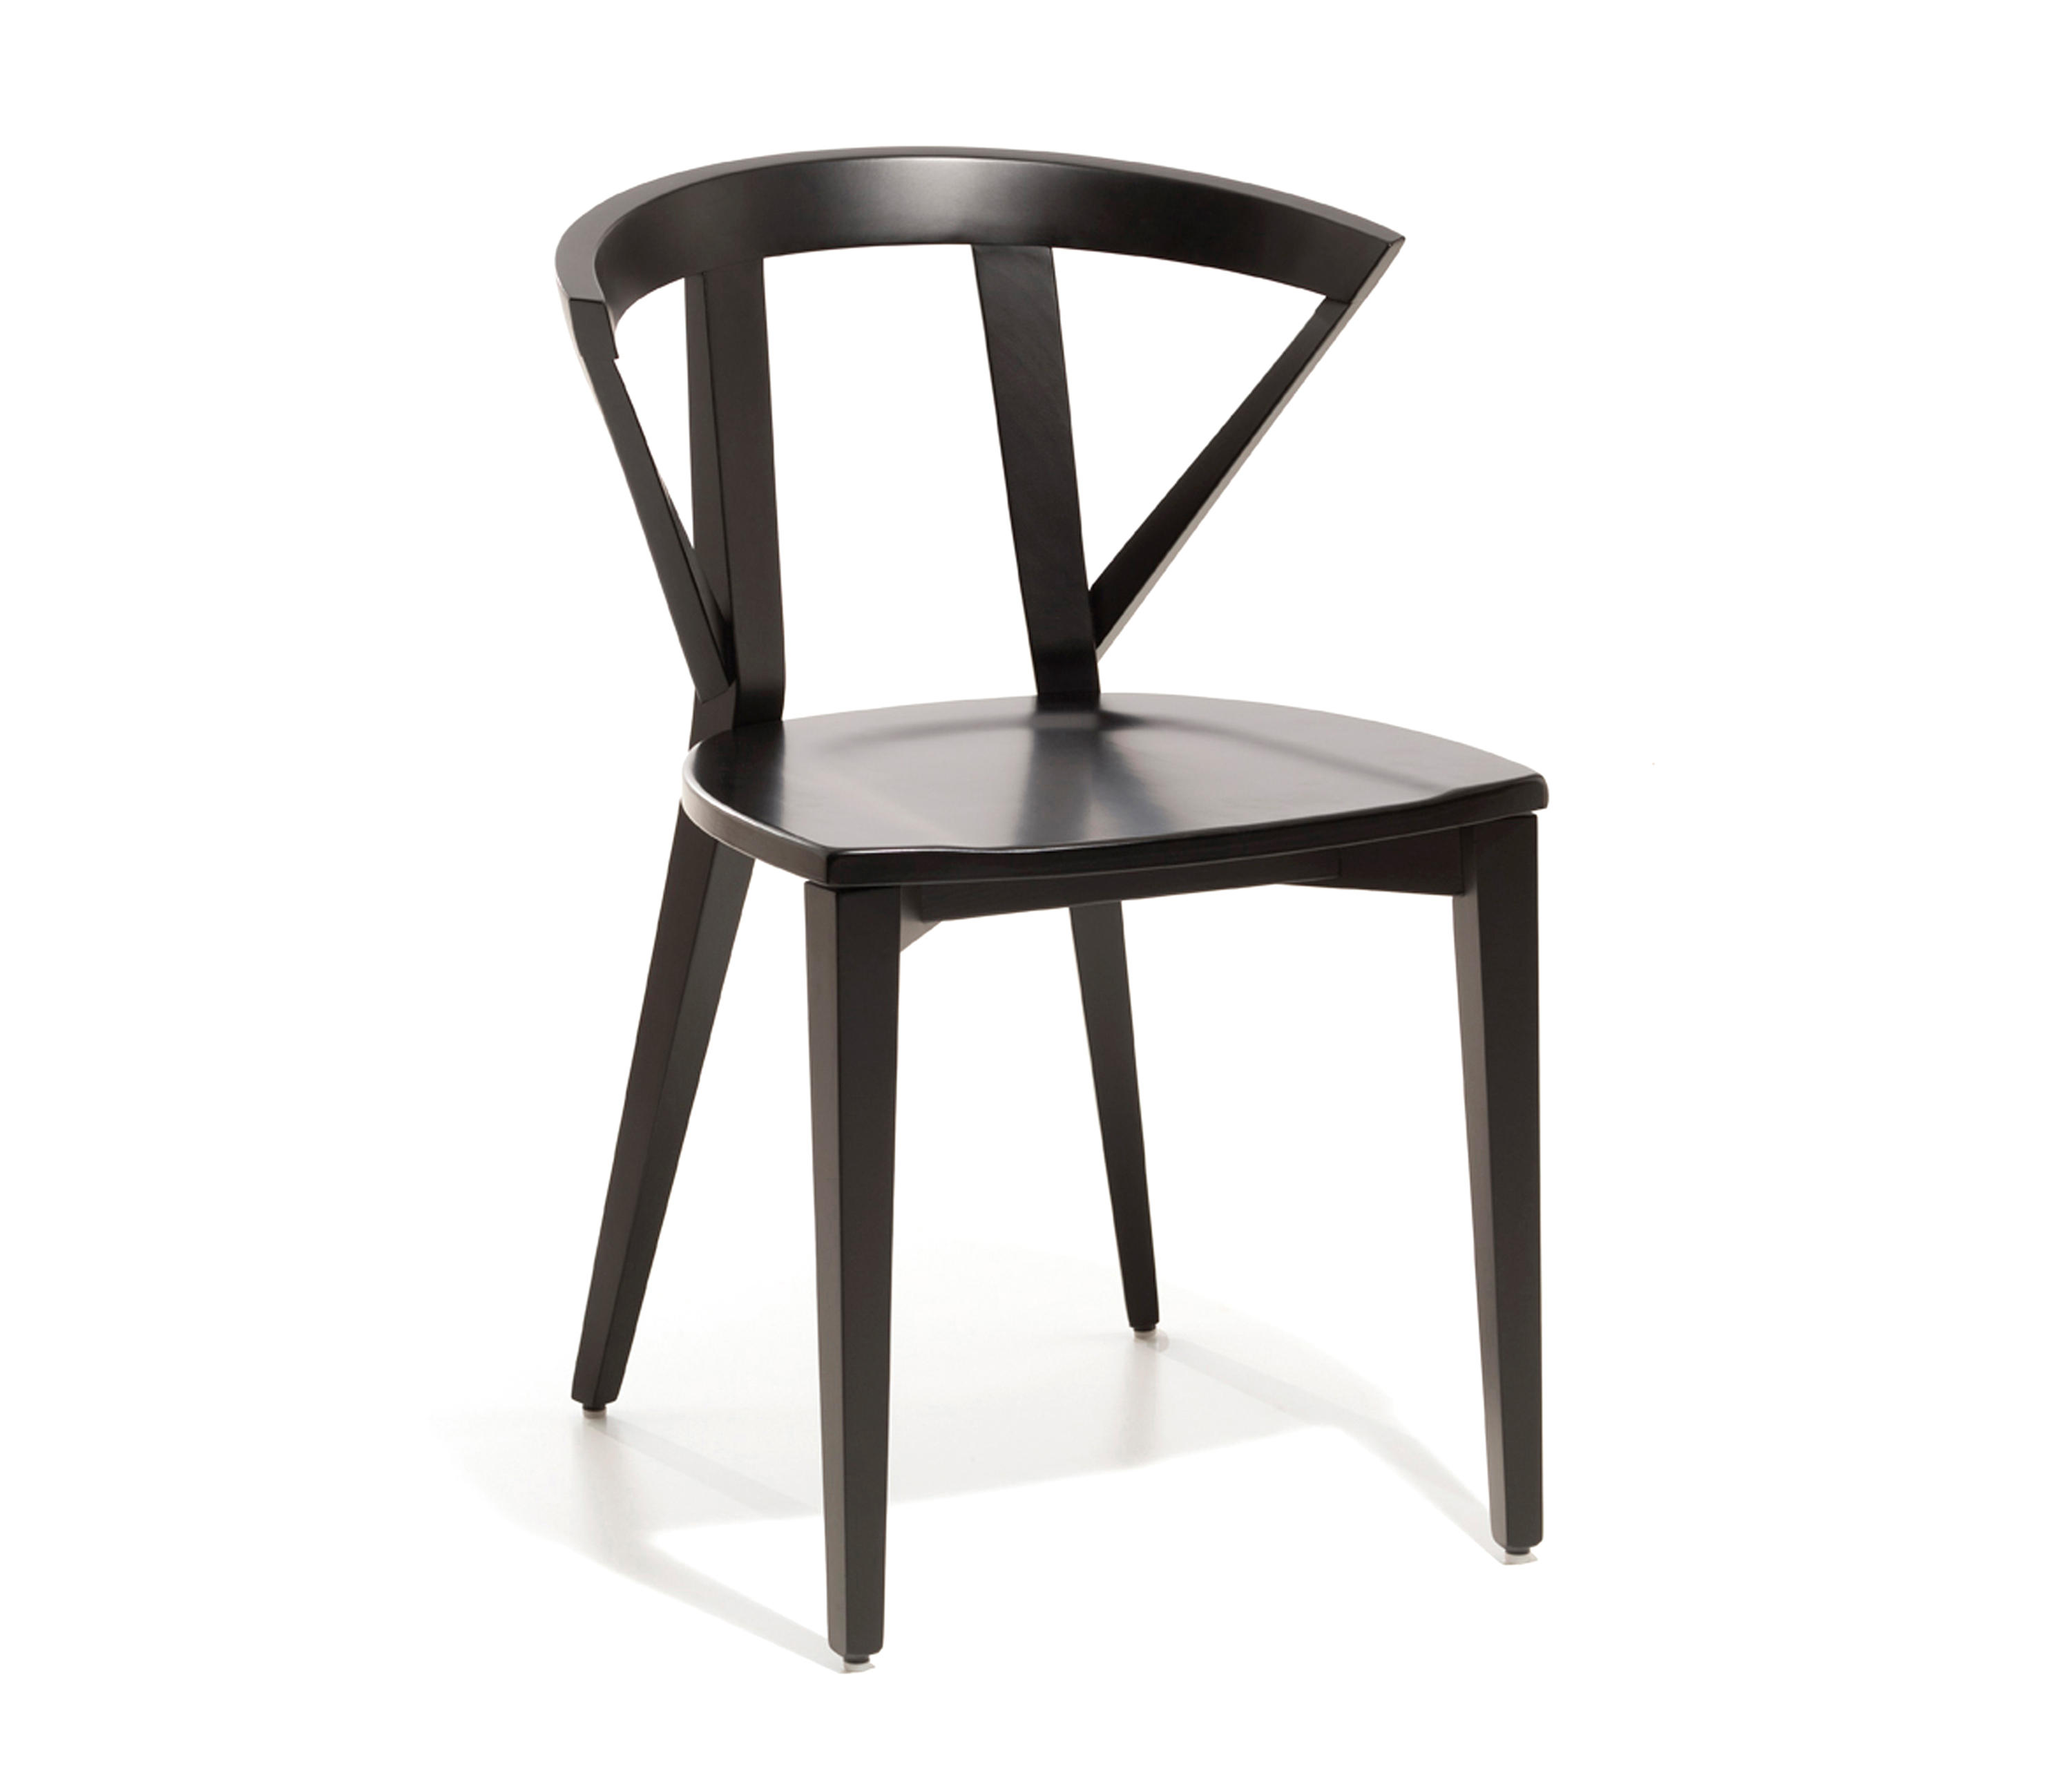 Tango A1 Stool Chairs From Aceray Architonic